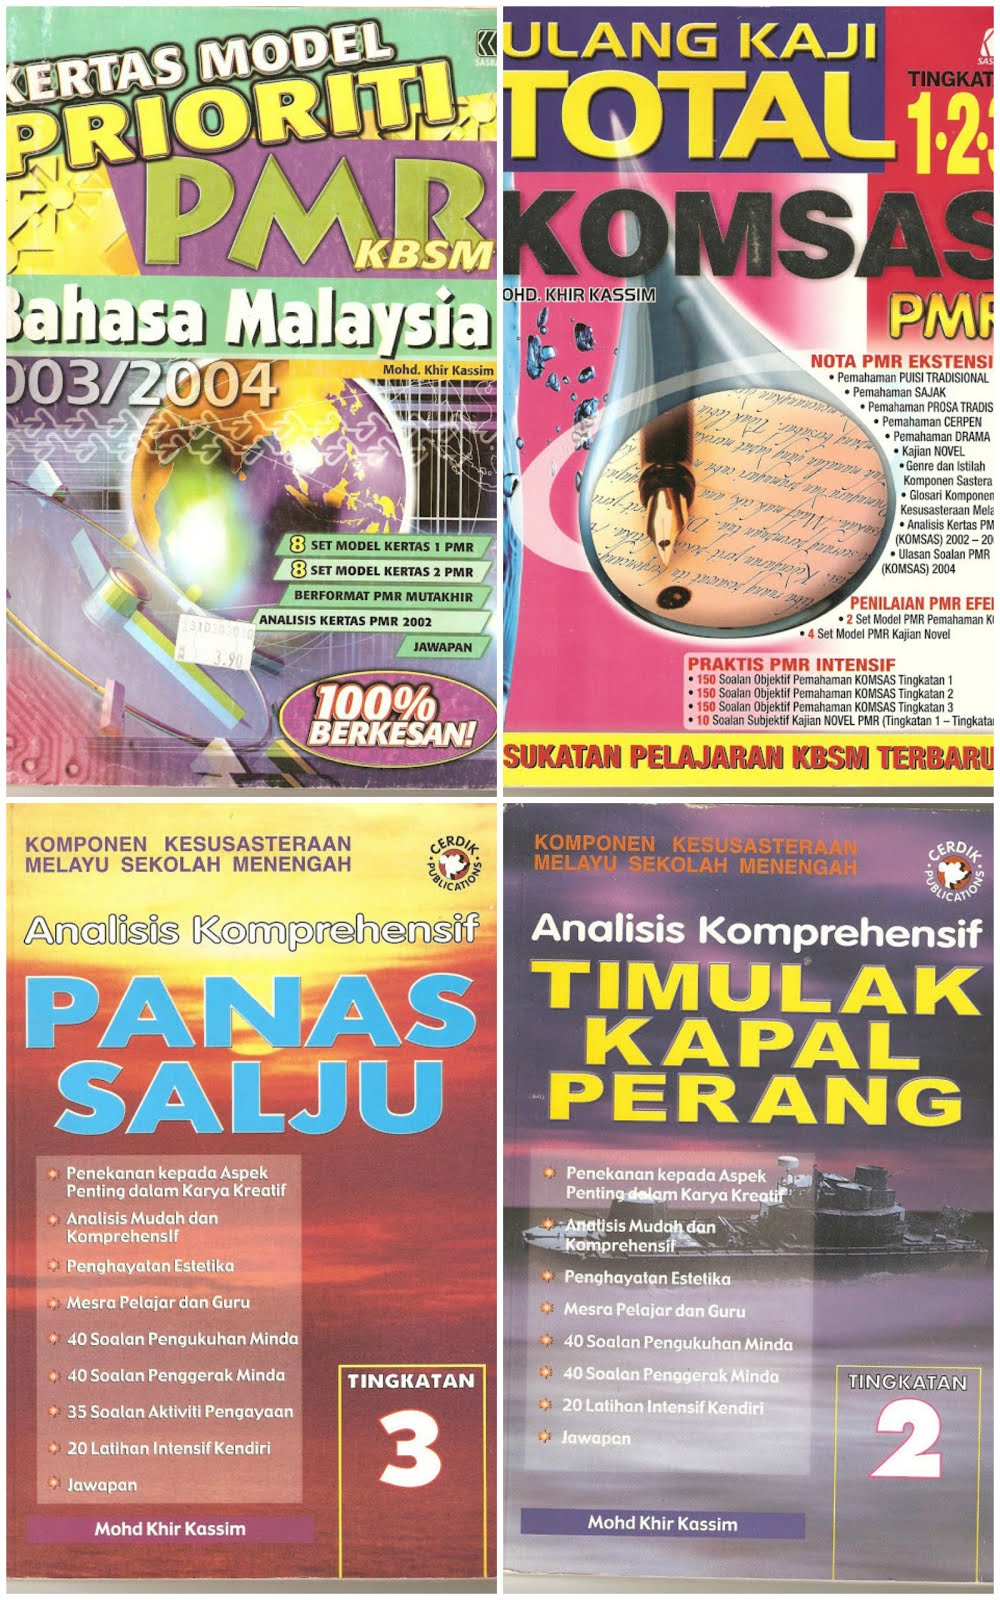 Buku Model Prioriti 2003/Buku Total Komsas PMR 2005